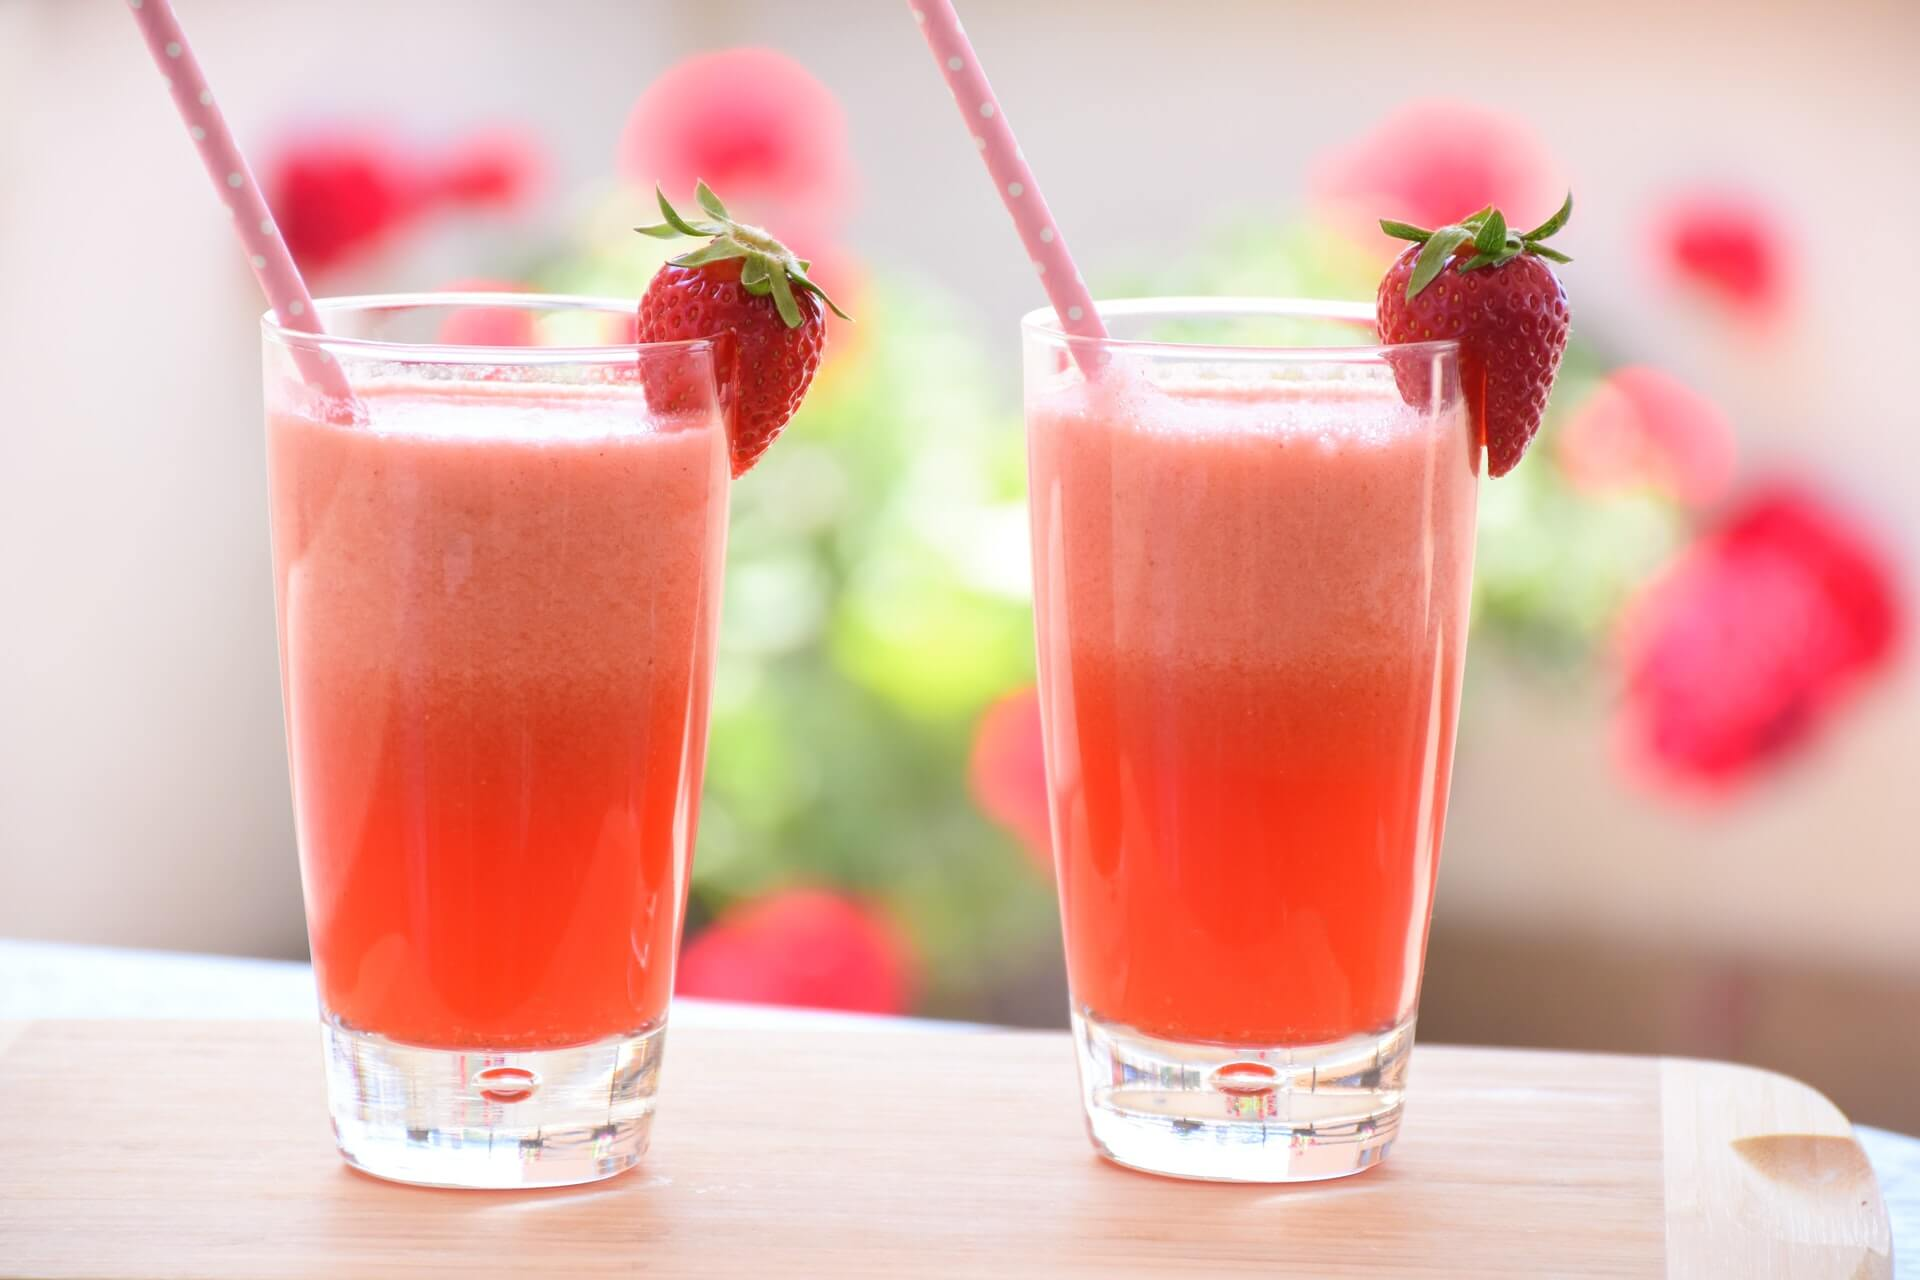 two glasses containing pink liquid straw and strawberries on the rim